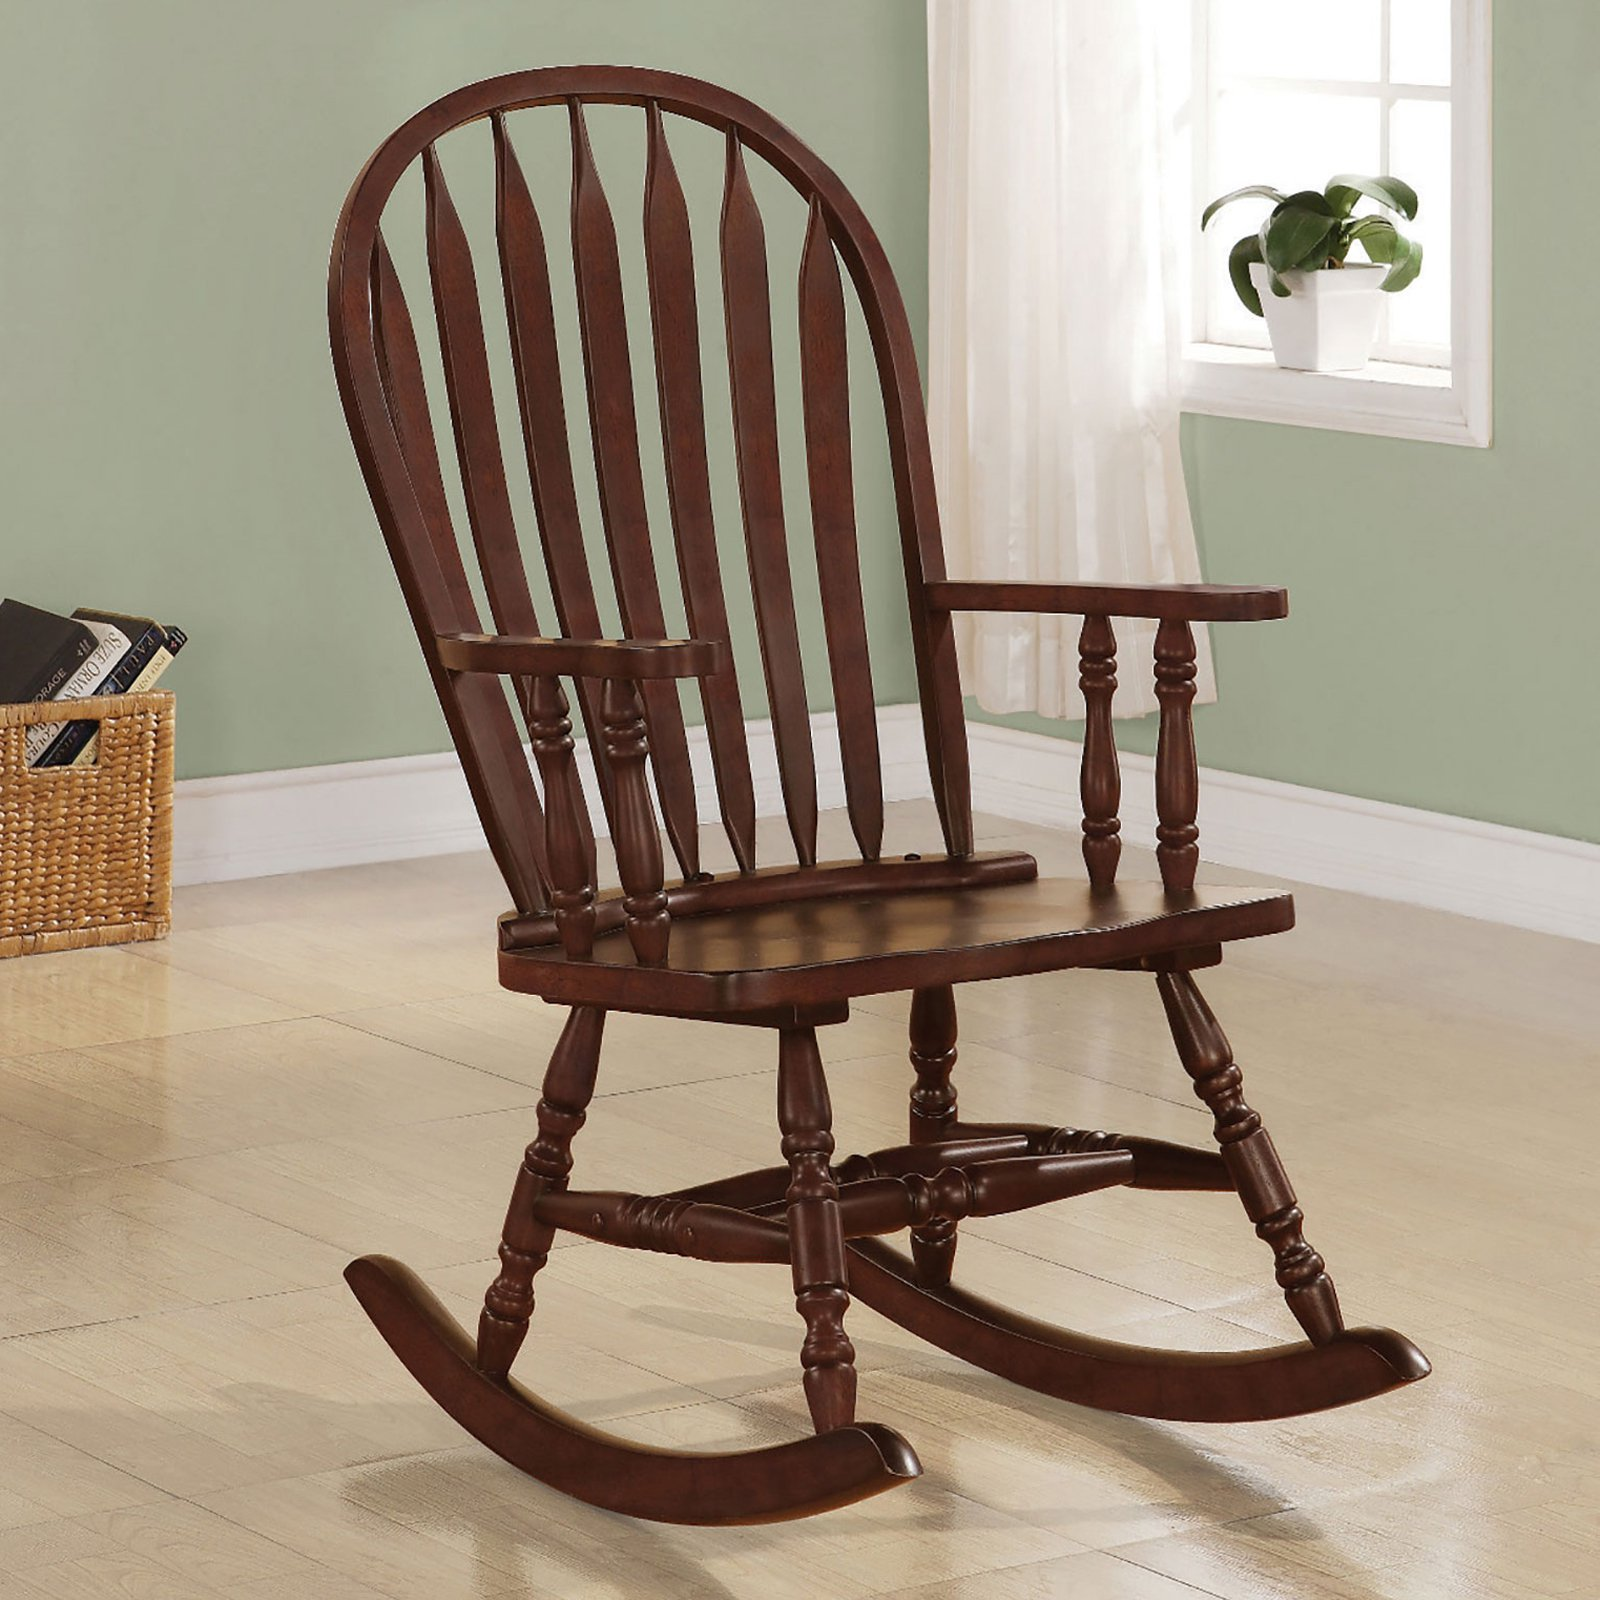 Charming Arrow Windsor Back Rocking Chair, Cappuccino   Walmart.com